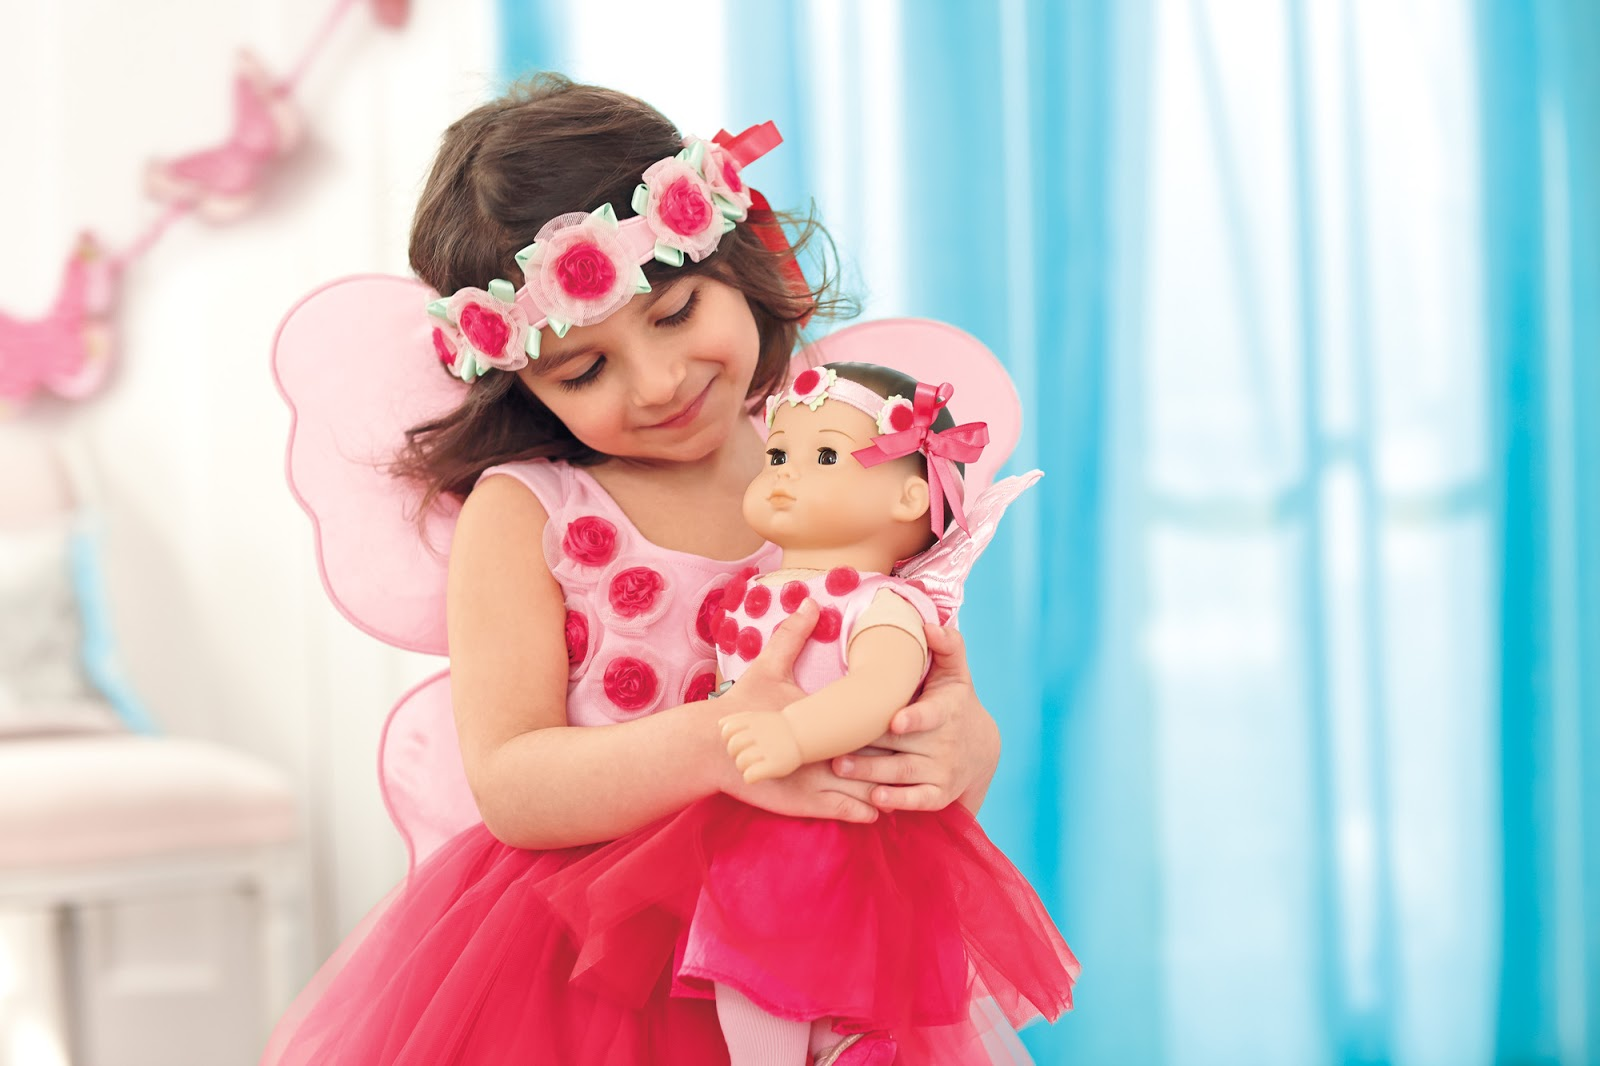 New images of Baby doll.  Baby Re born real doll play toy for girls.The dolls are designed very well